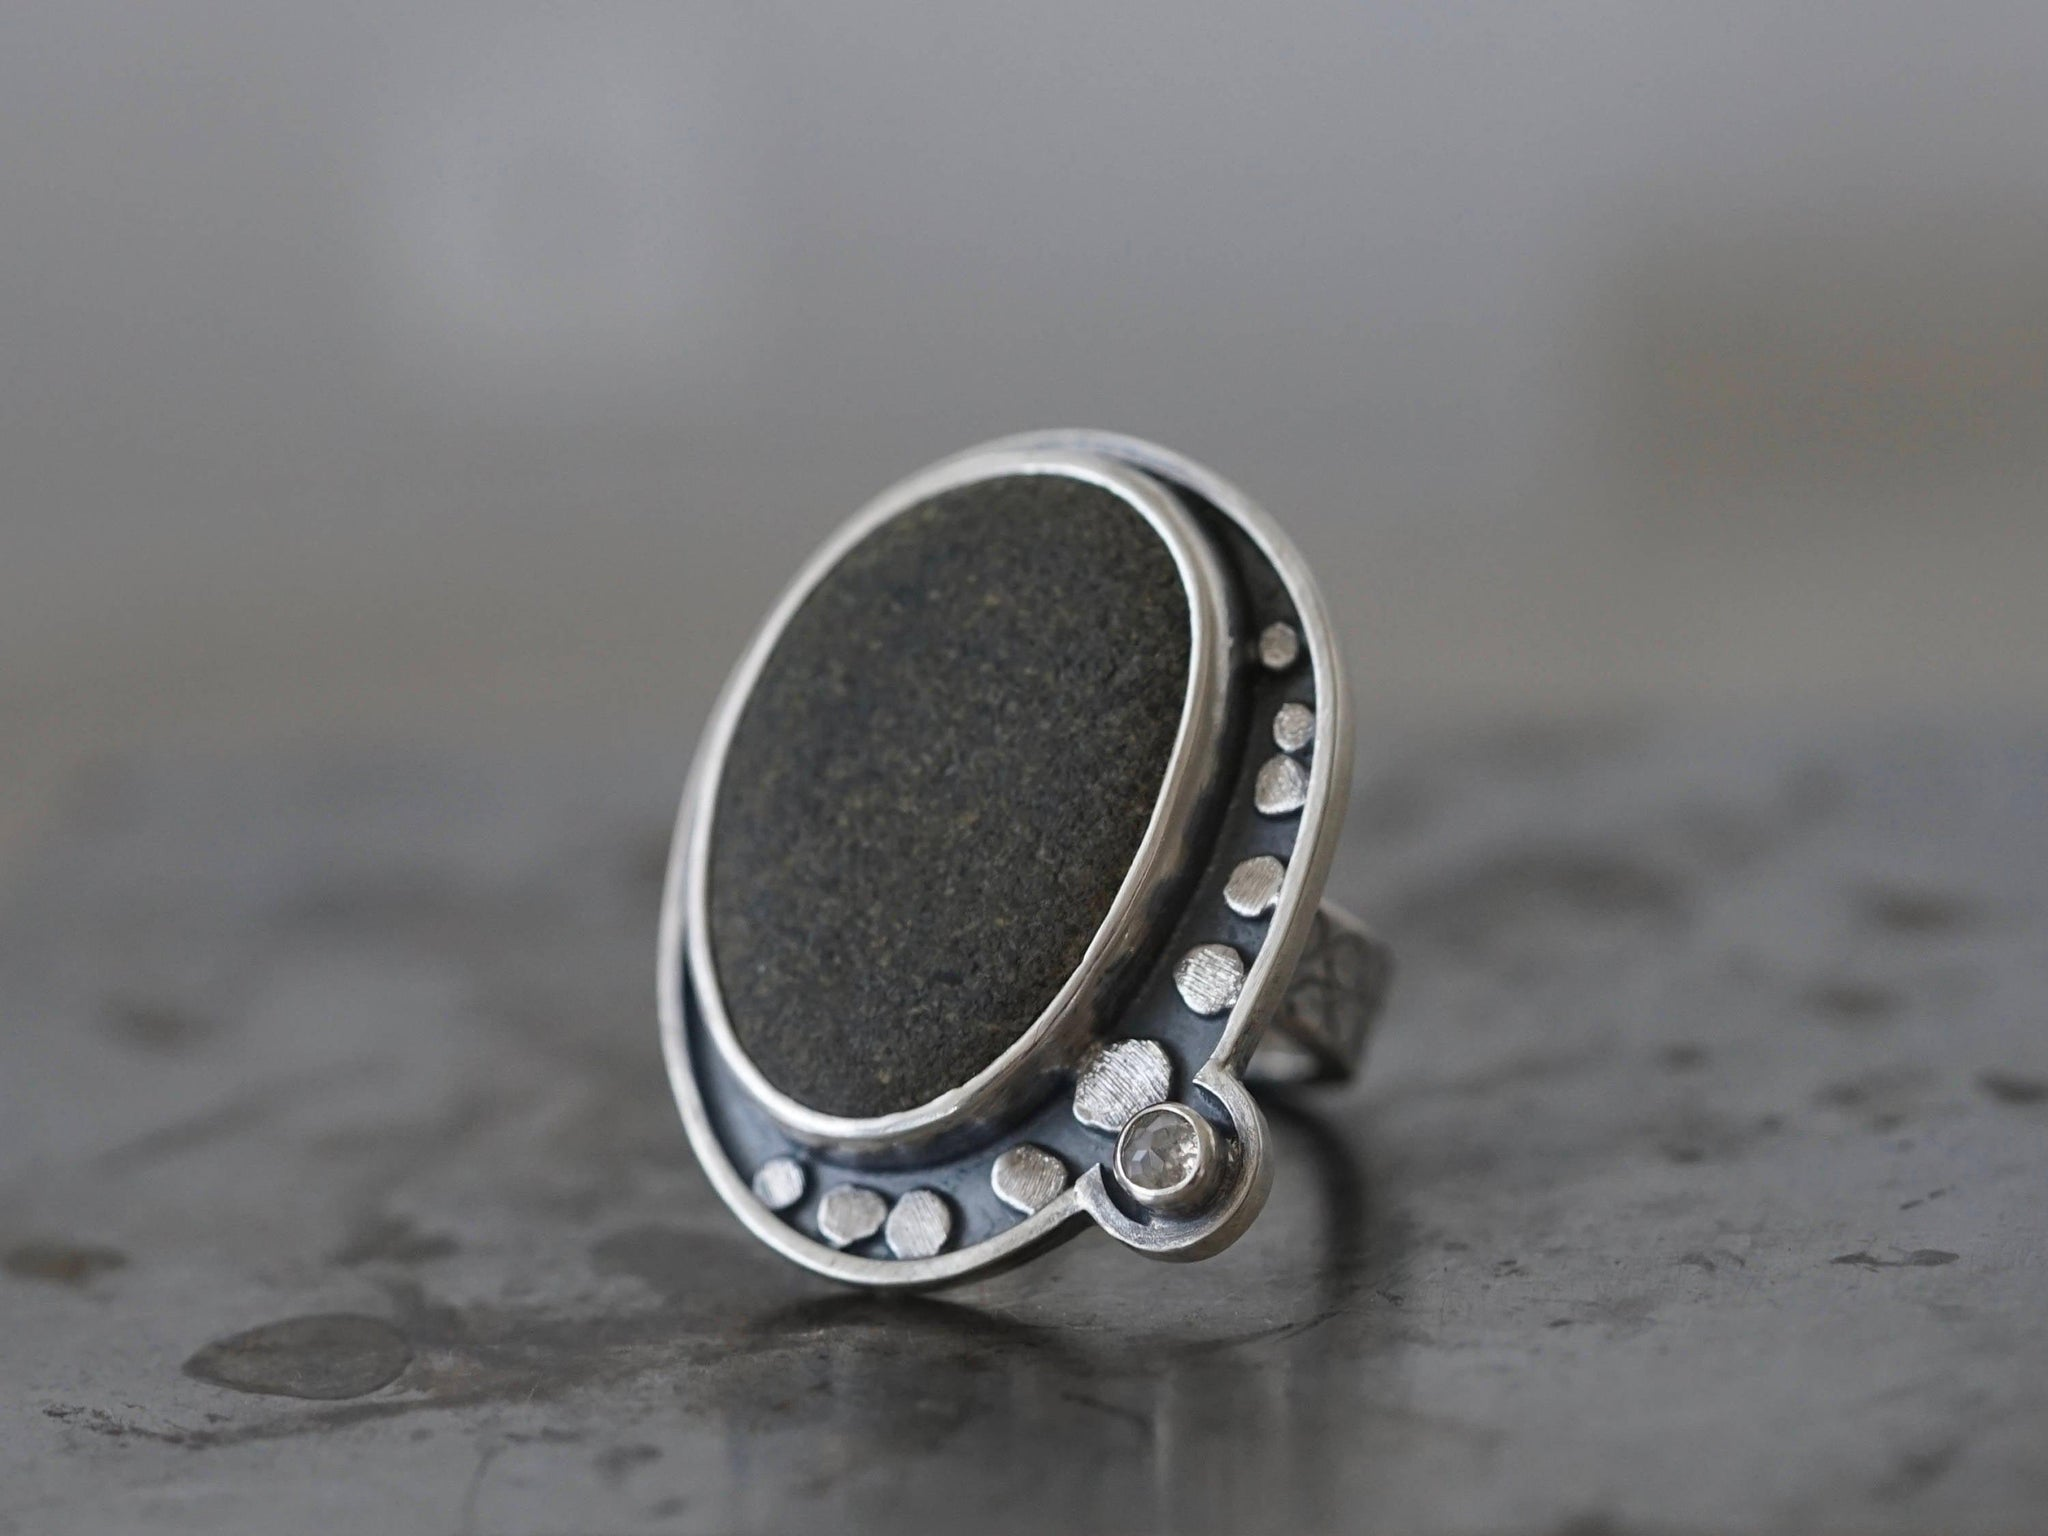 Large pebble and rose cut diamond ring, size 7.75